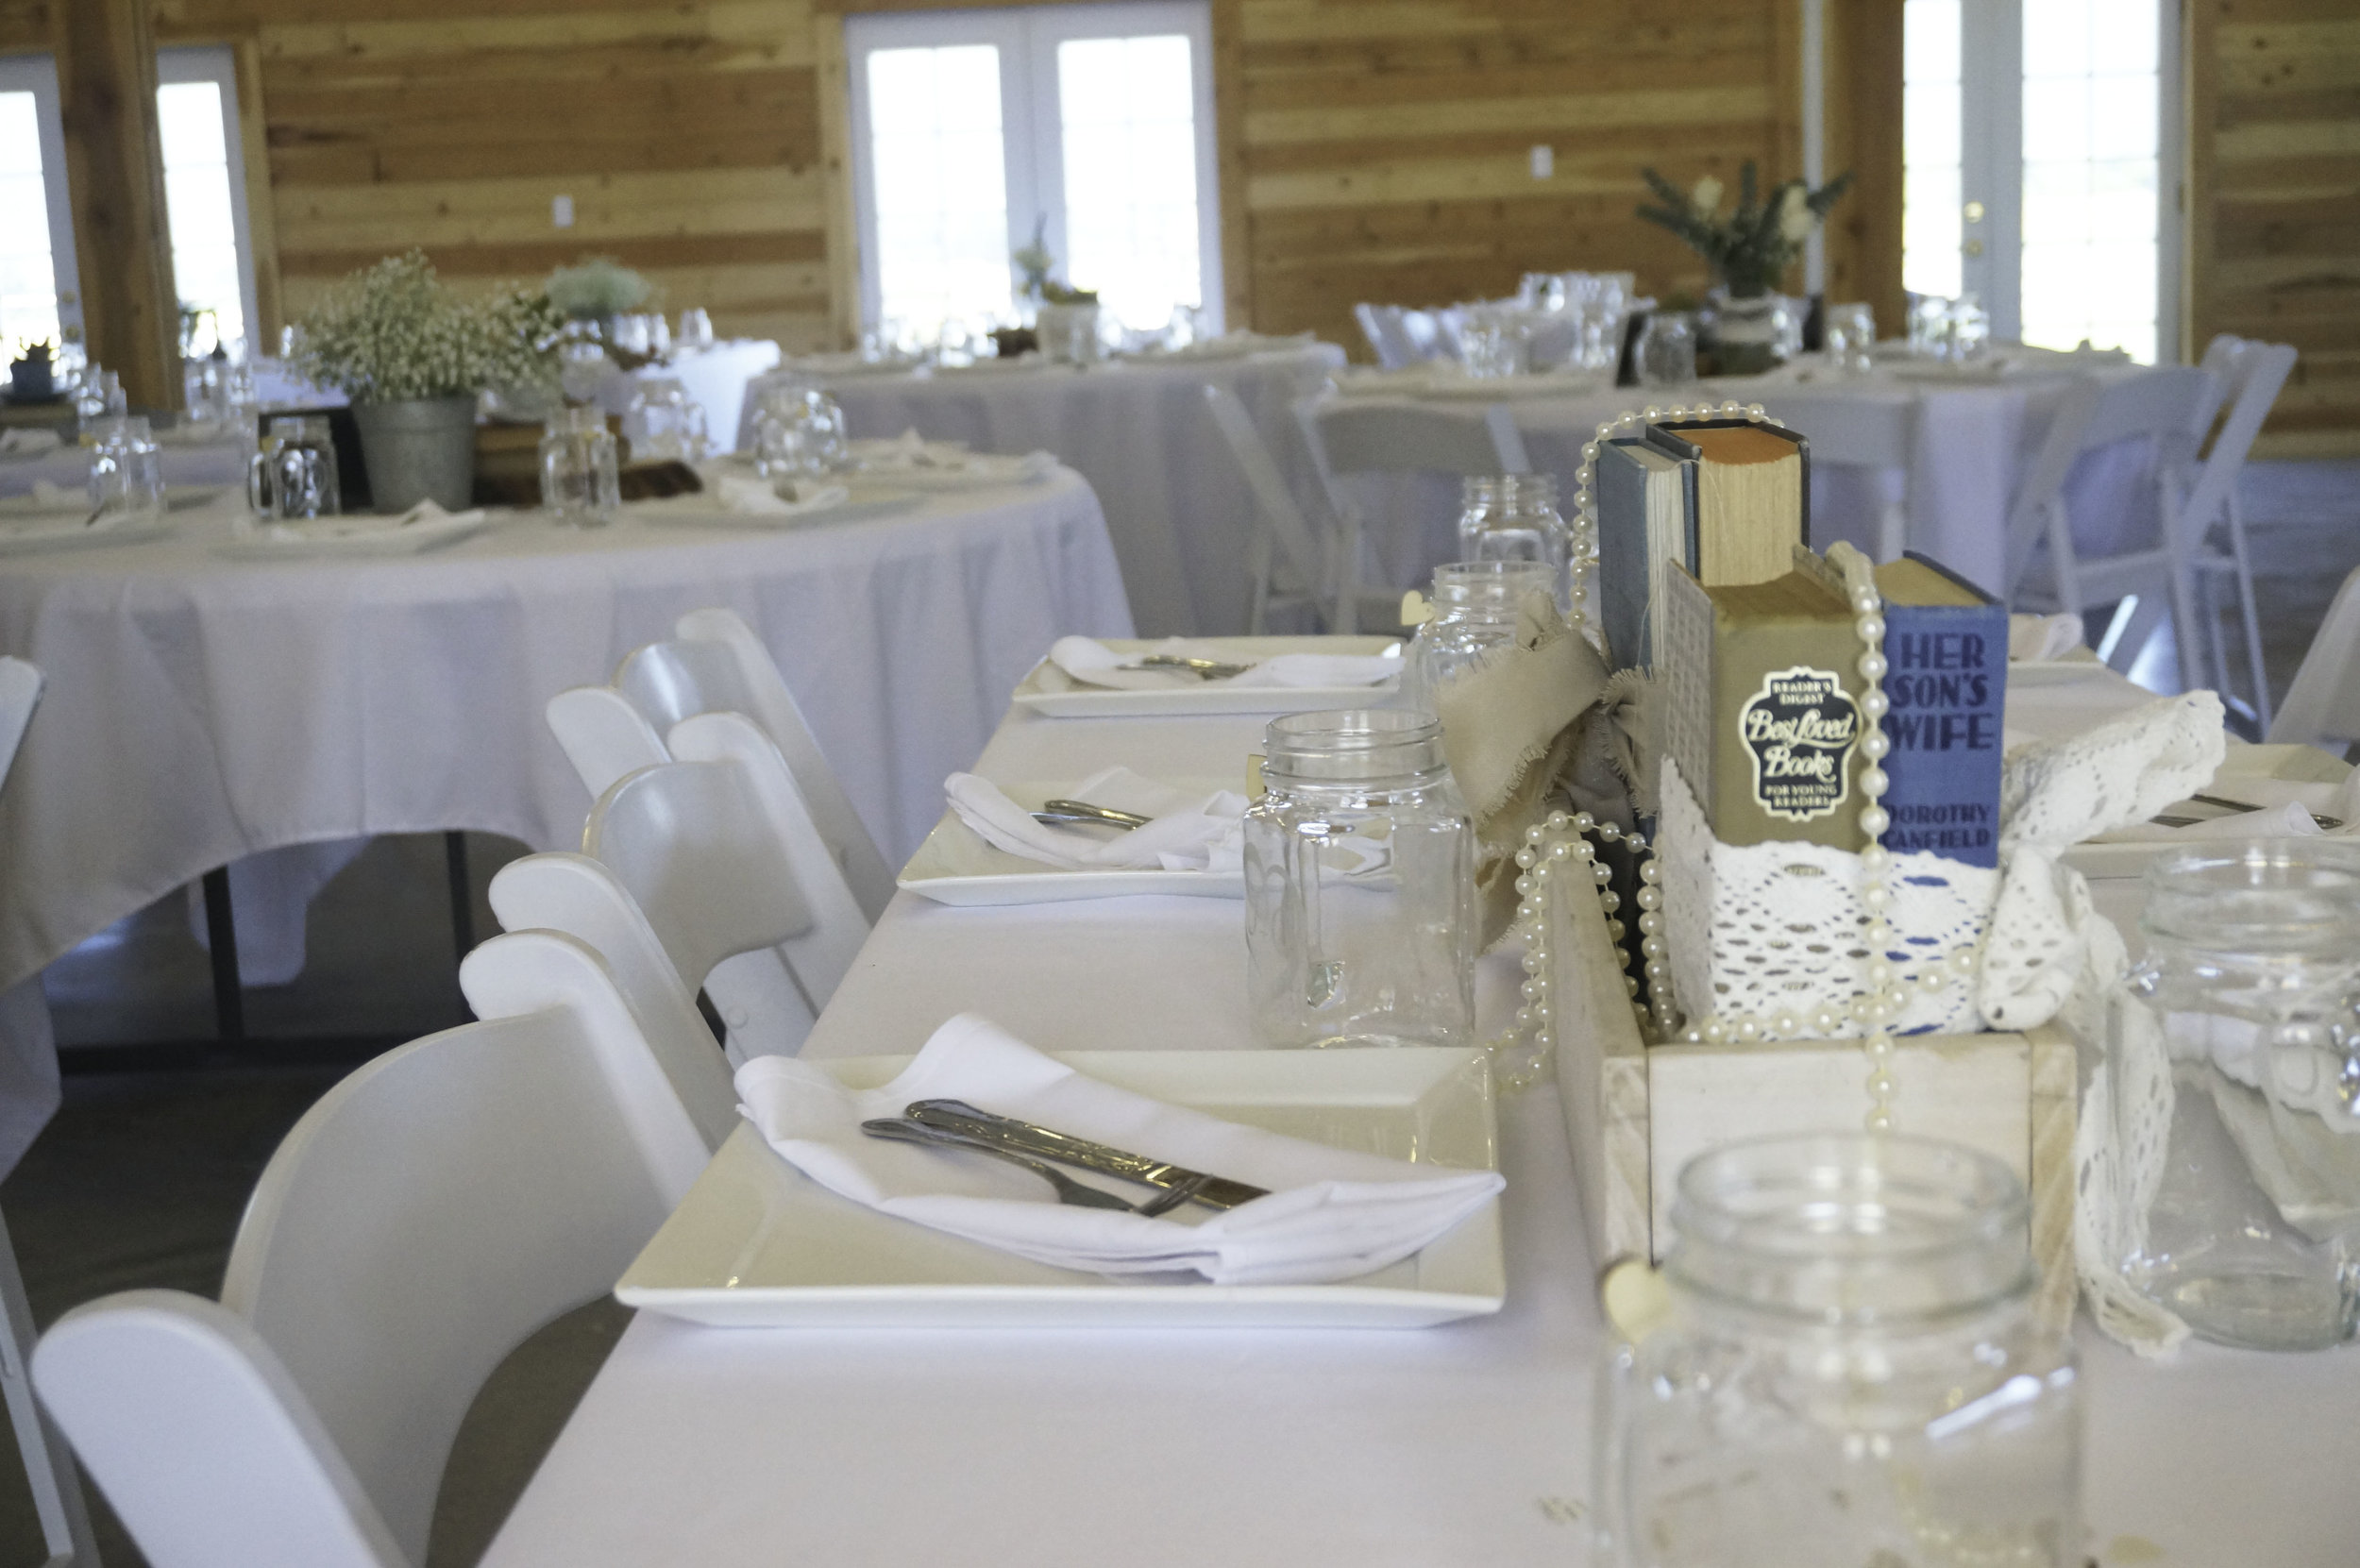 The bride collected vintage items, including old books, to decorate the tables.